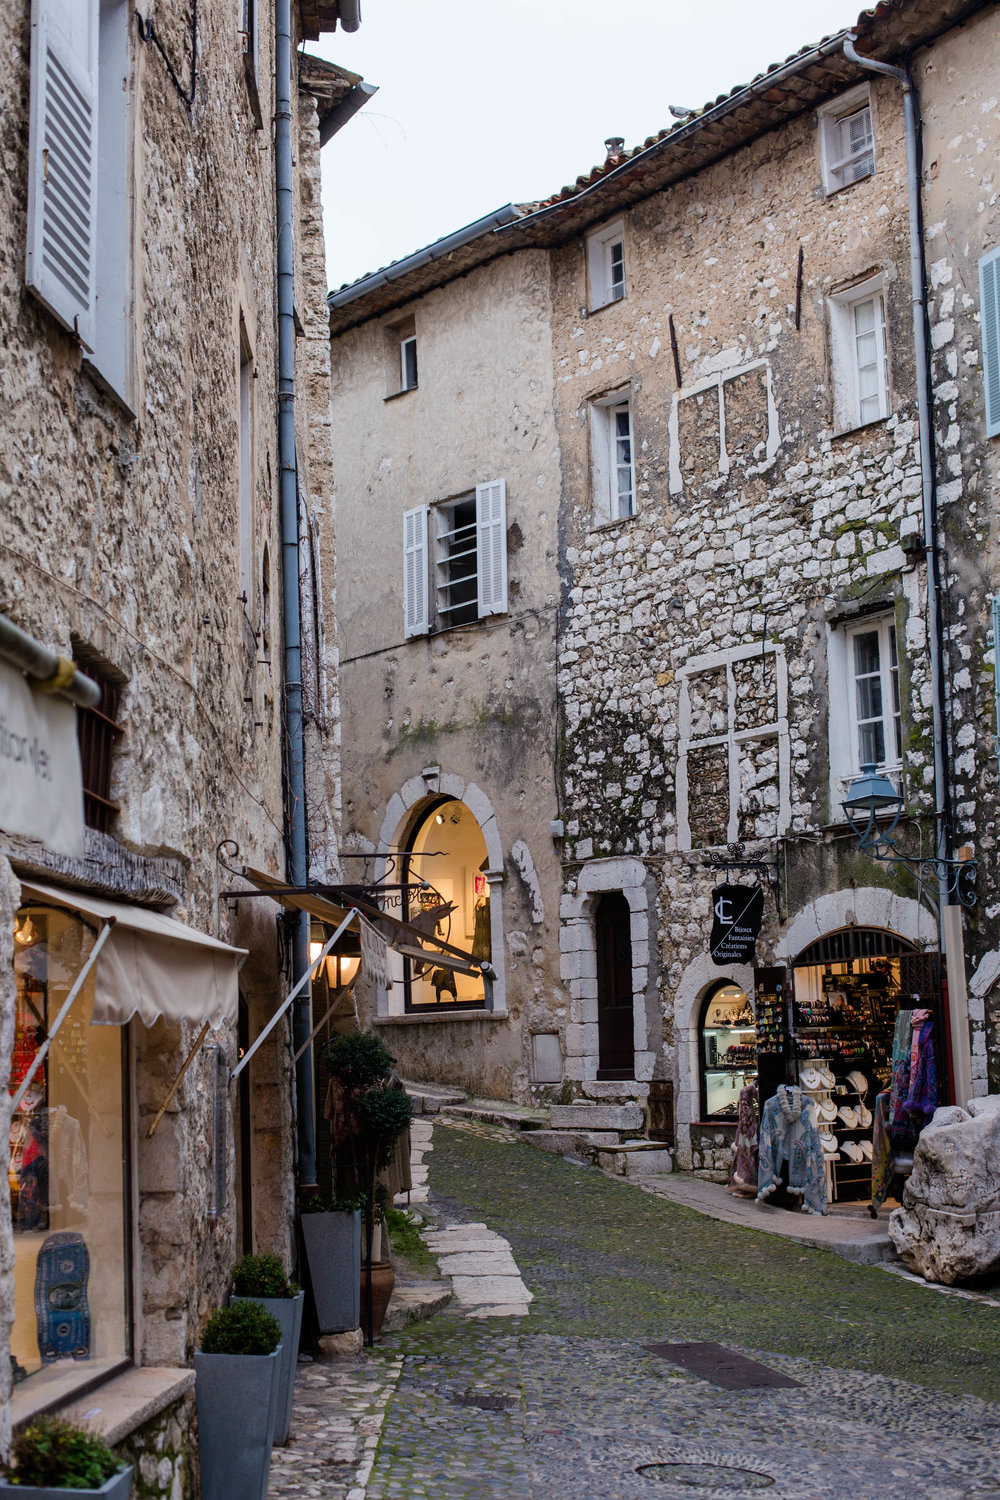 A medieval town in the French Riviera